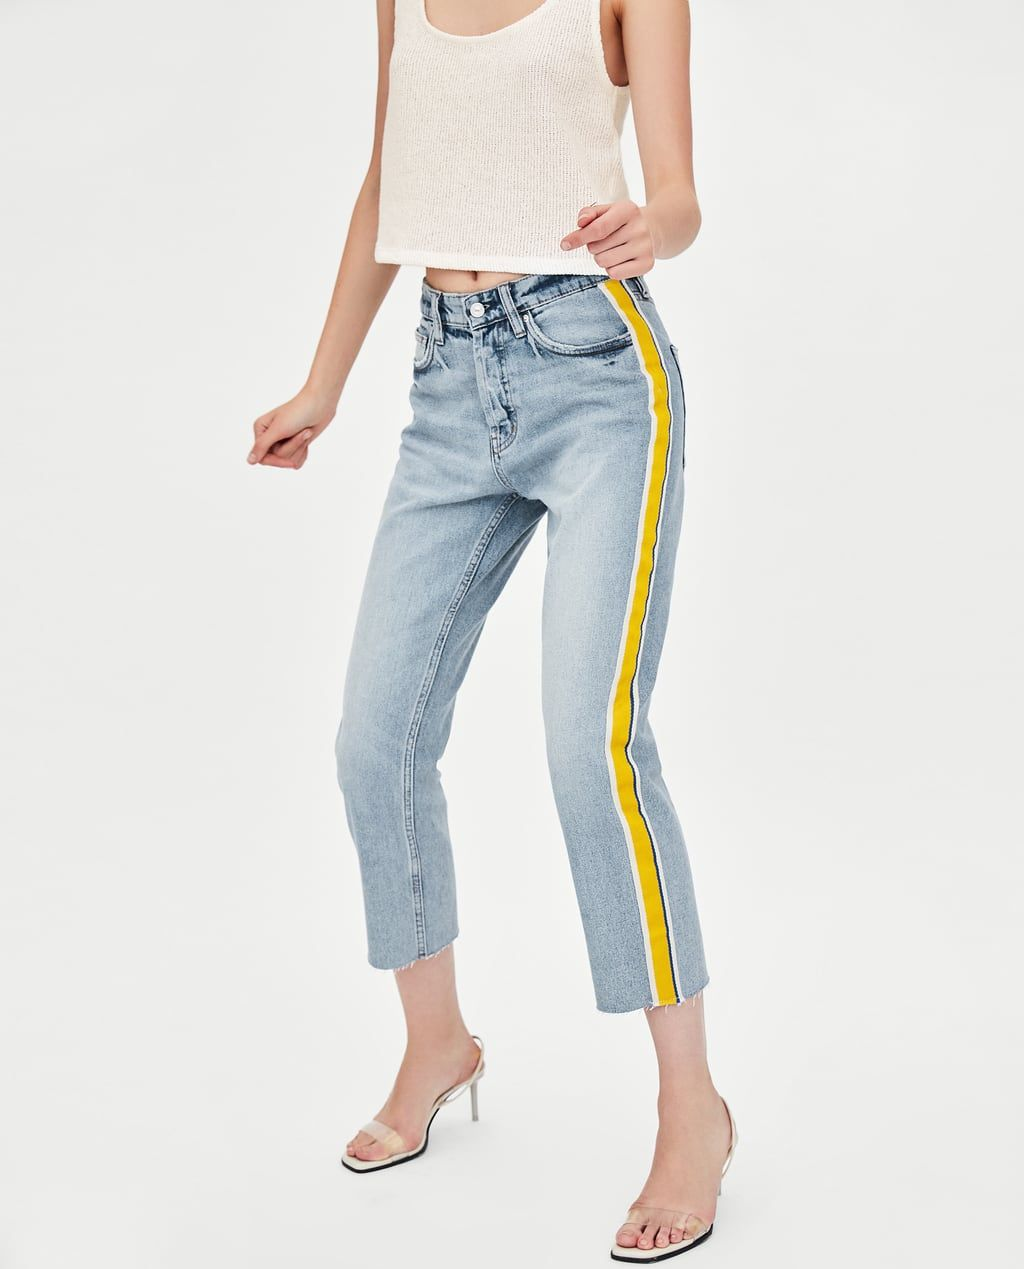 e206687e59 Image 4 of AUTHENTIC DENIM STRAIGHT-LEG HI-RISE JEANS from Zara ...